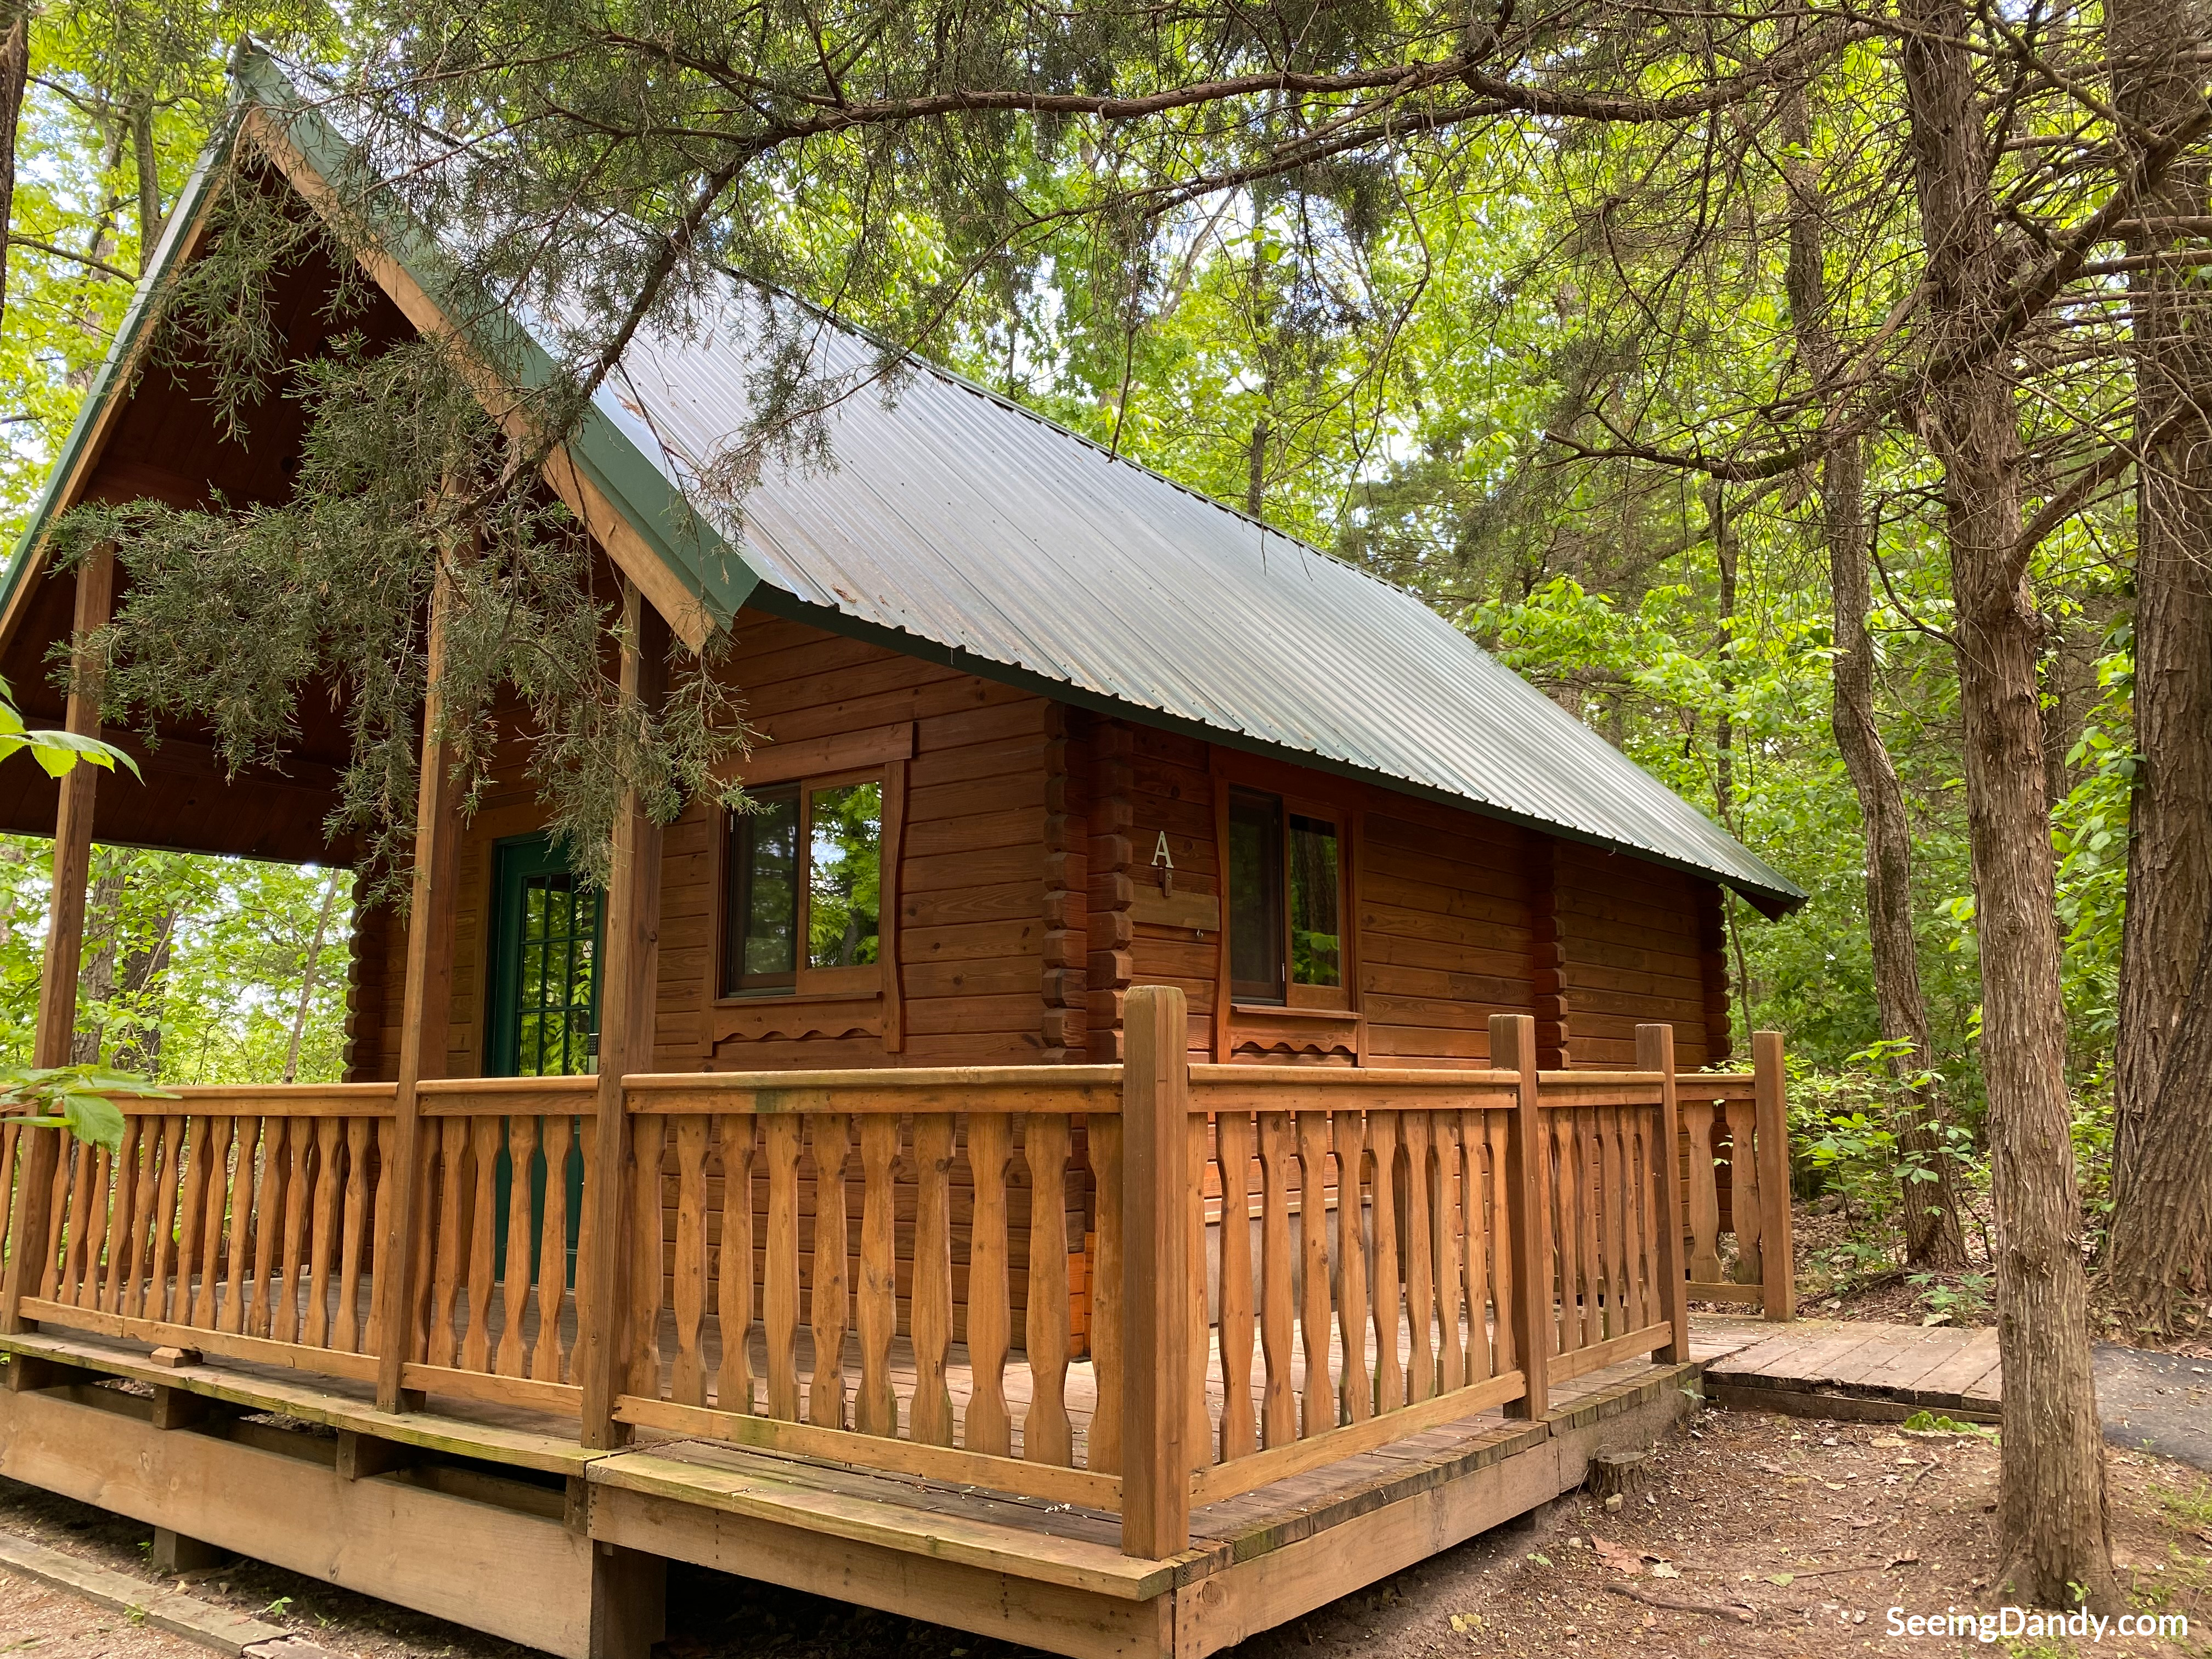 Klondike park cabin, missouri cabin rentals, St. Charles County cabin, family vacation, family trip, st. louis family